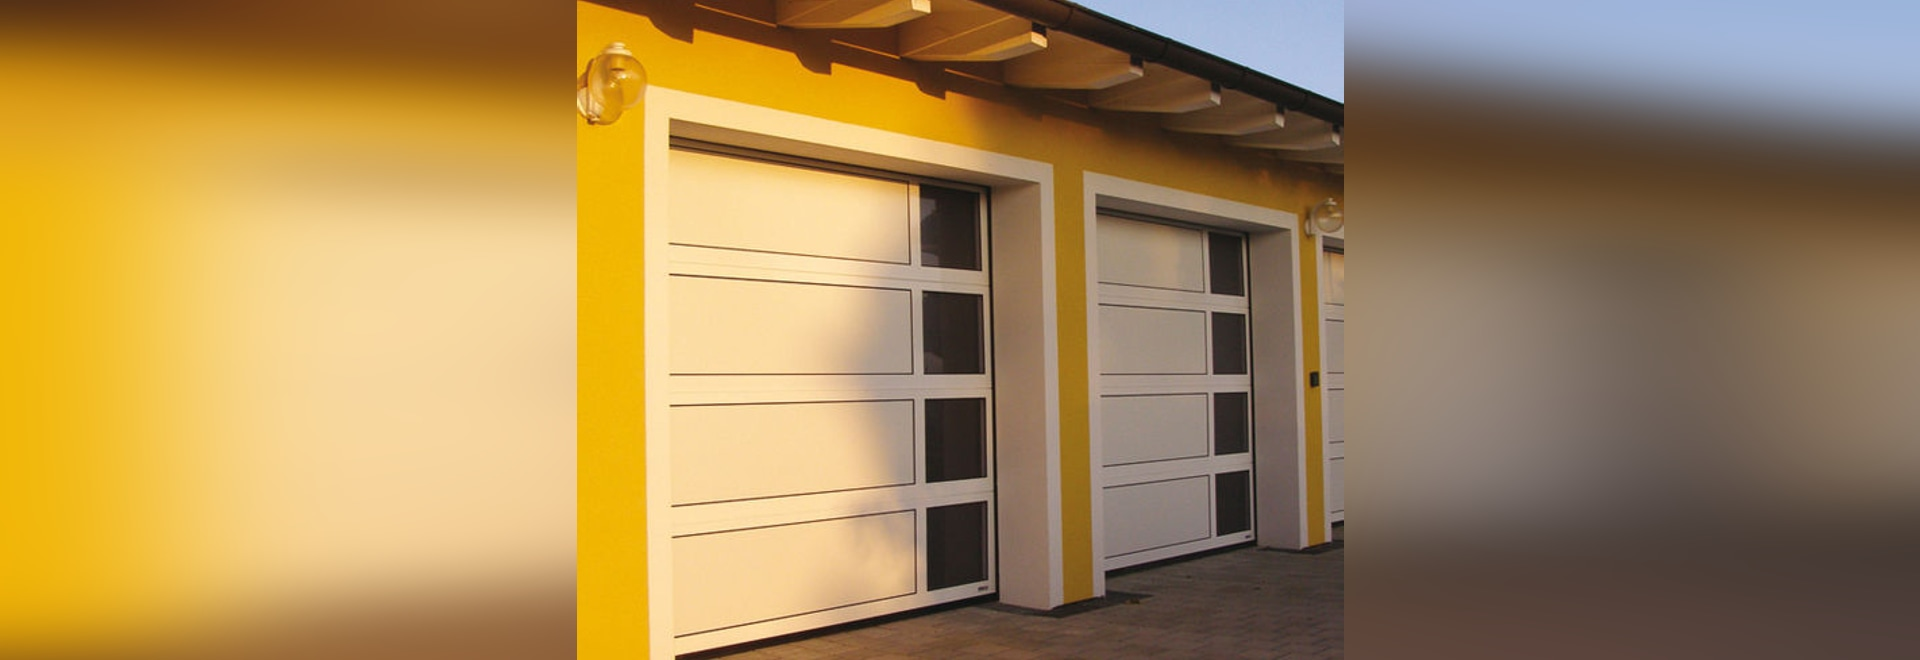 NEW: sectional garage door by Guttomat